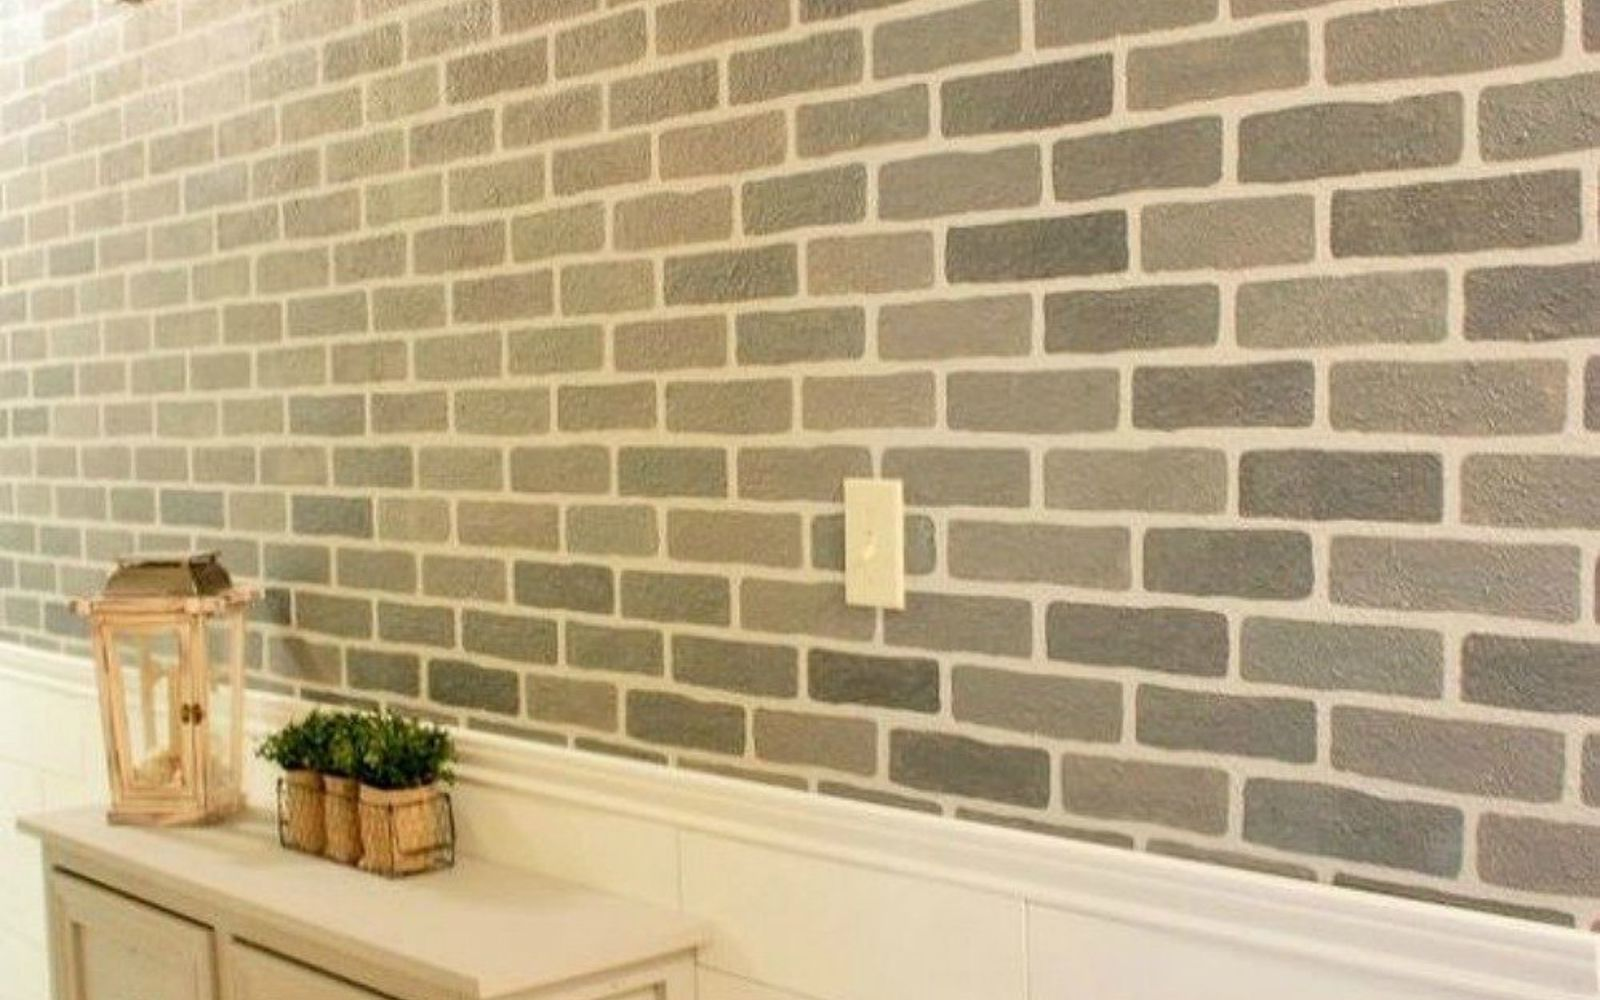 s 12 stunning ways to get that exposed brick look in your home, Use a stencil to get the faux brick right